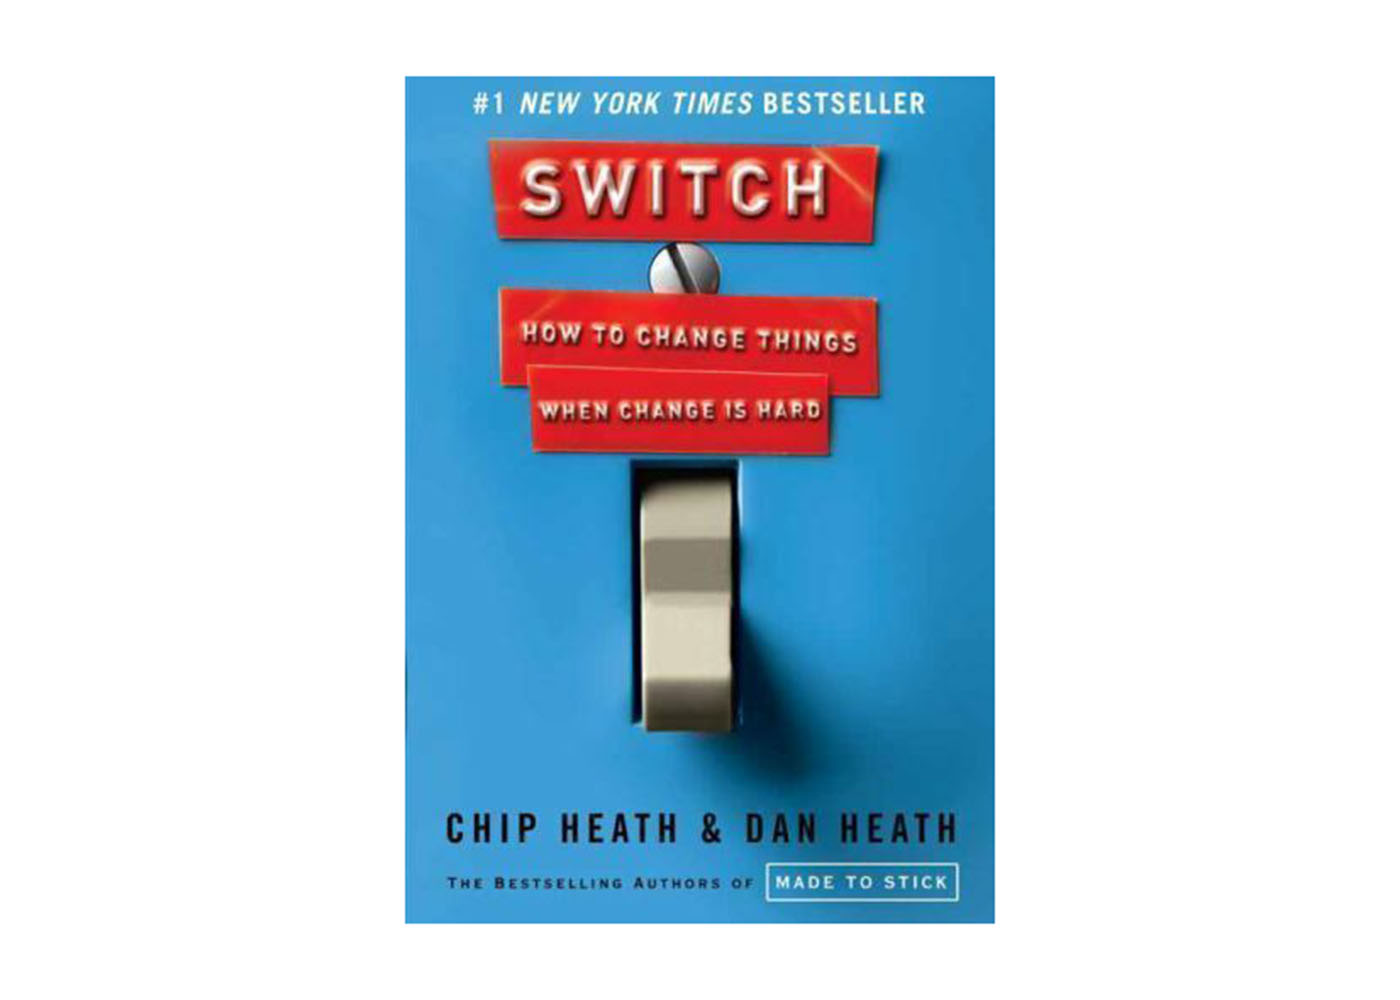 Switch-How to Change Things When Change is Hard